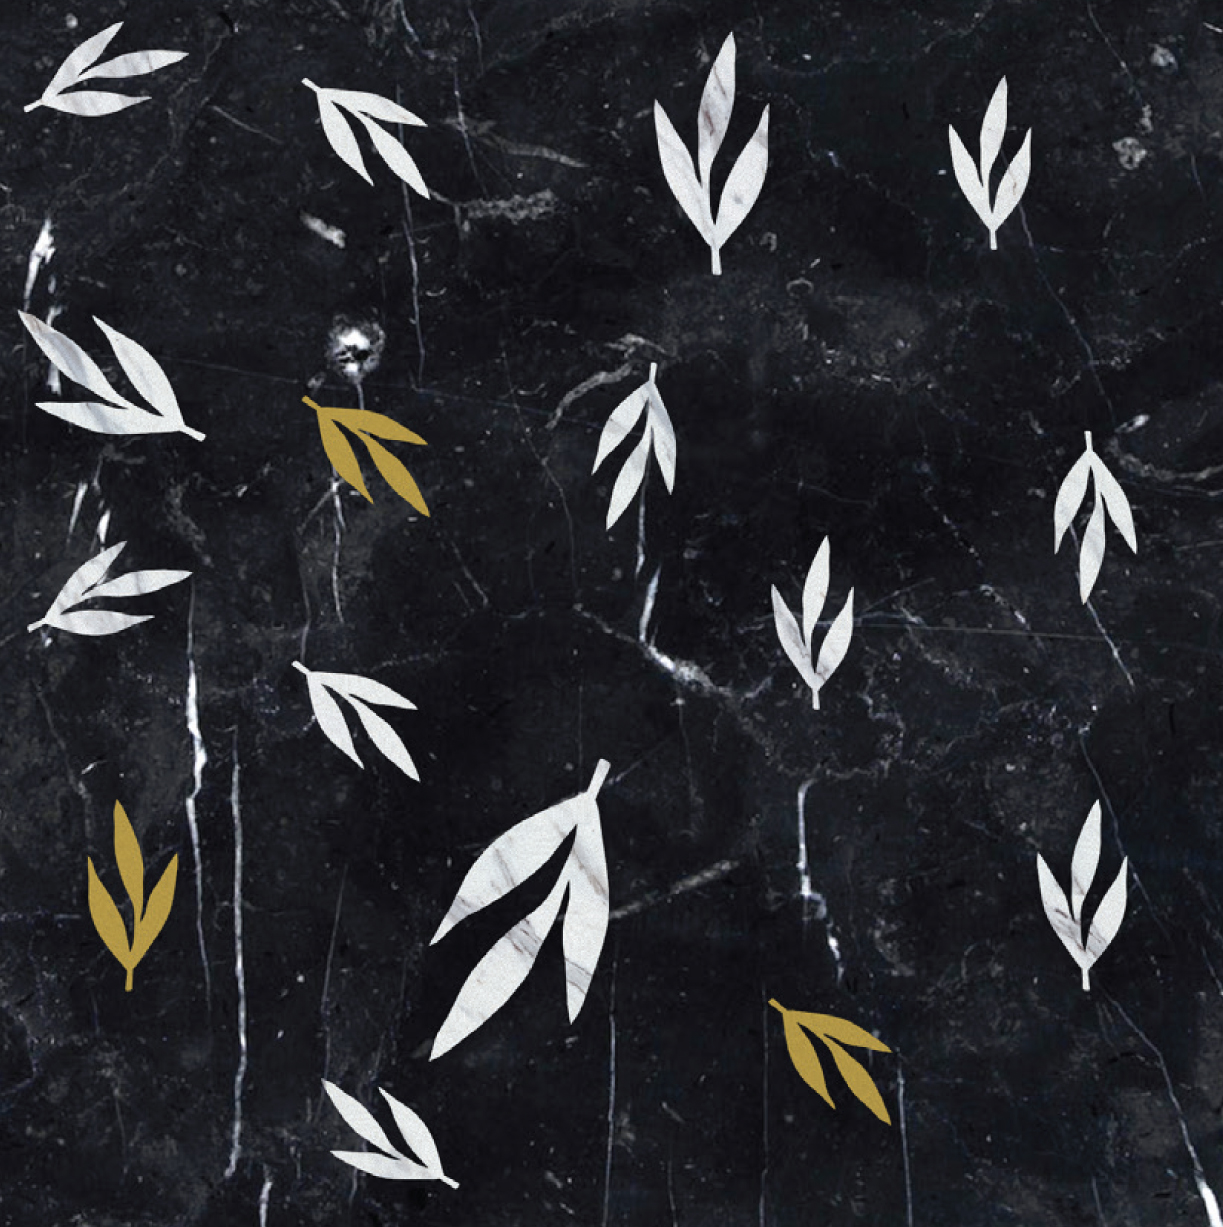 Leaves White and Brass - Ma.C.S. combines artisan crafted production with industrial processing powered by numerical control machines. This is demonstrated by the new marble inlay covering collection. The research aims to integrate the classical idea of marble inlay (combined in some cases with other materials such as wood and metal), with shapes, compositions and innovative, charming designs. All of that is rigorously made in Italy.  The 2017 collection is composed of tiles, large marble slabs and other architectural solutions. The design is characterised by both serial geometric sequences and eclectic surfaces, inspired by nature shapes and dreamlike dimensions.  The proposed coverings, both horizontal and vertical ones, are fully customizable in size and colors, according to client needs. | Matter of Stuff